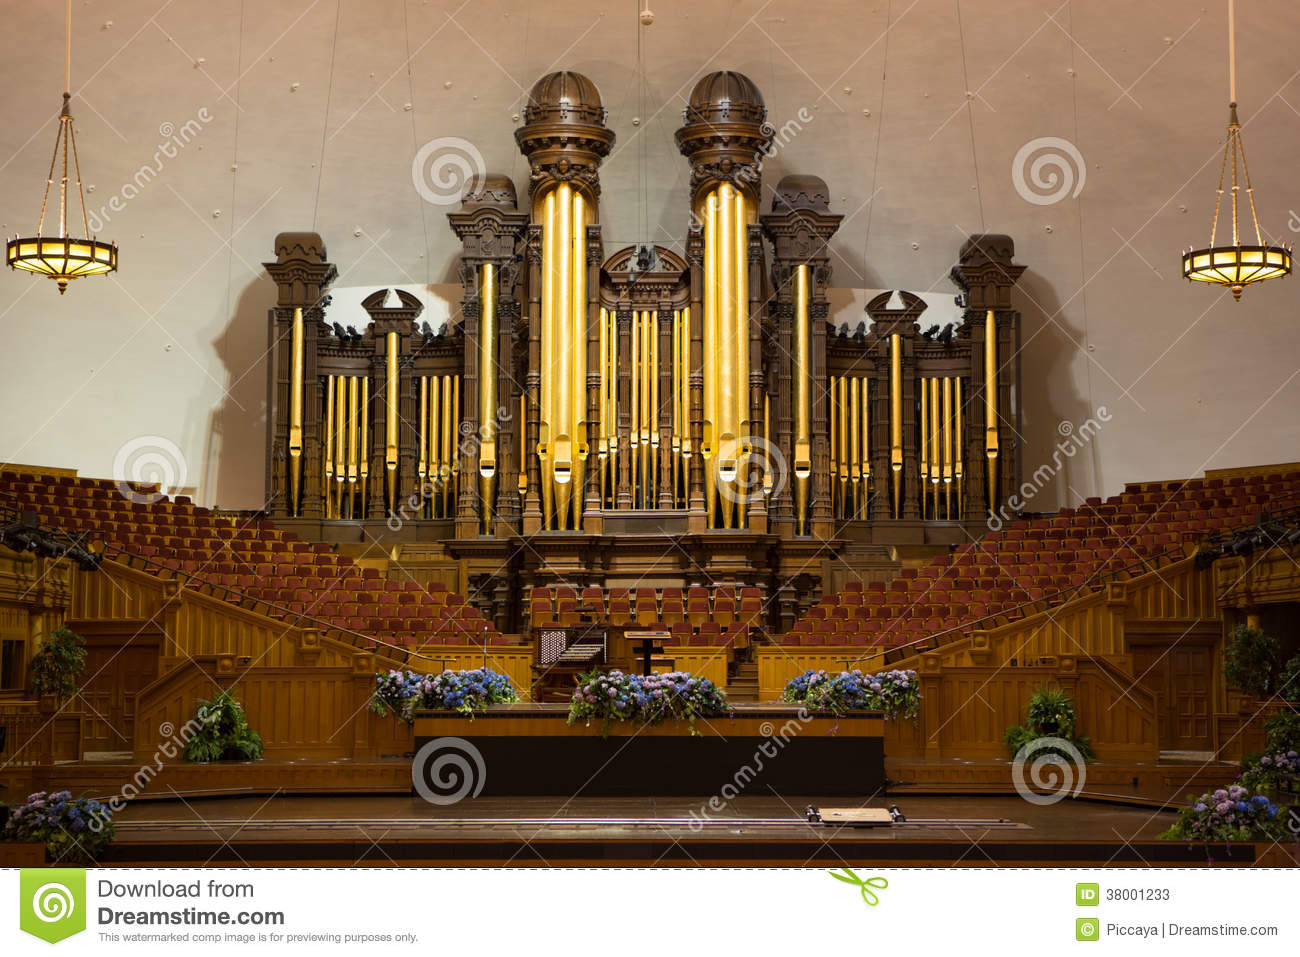 Church organ pipes at the Mormon Tabernacle